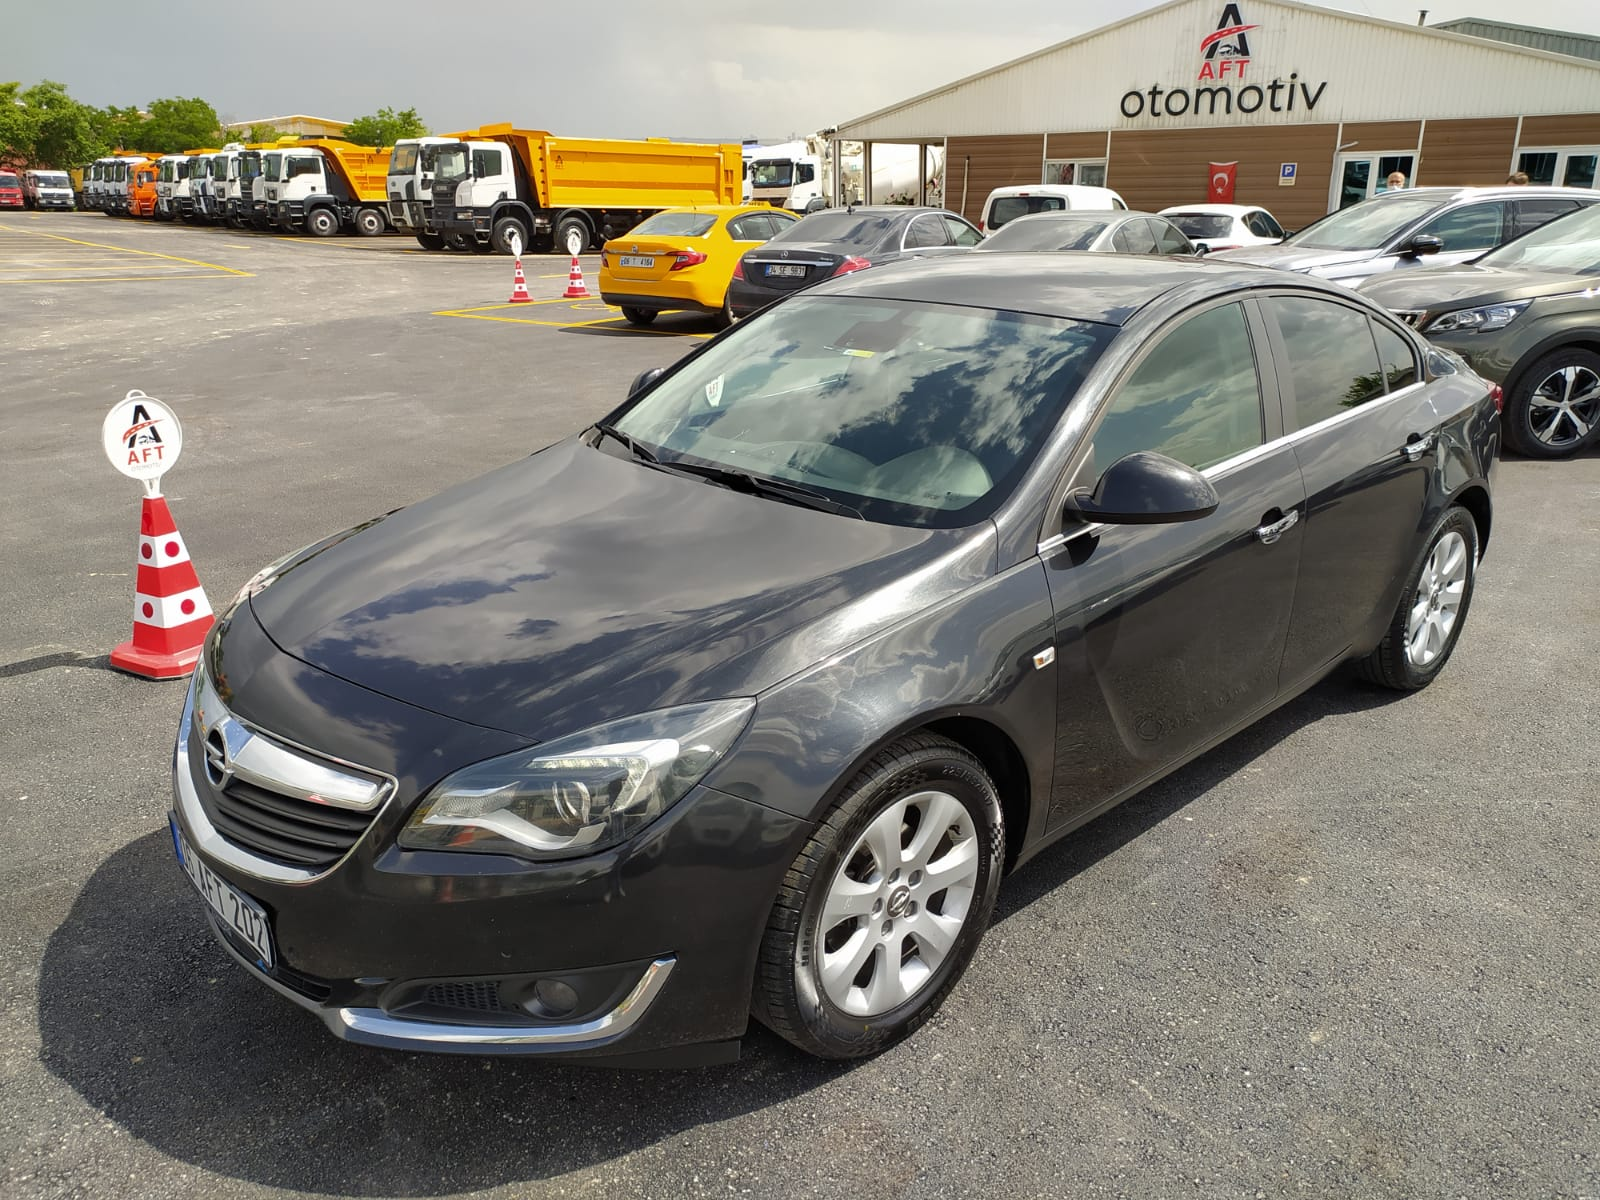 2015 MODEL OPEL INSIGNIA 1.6 CDTİ BUSİNESS OTOMATİK